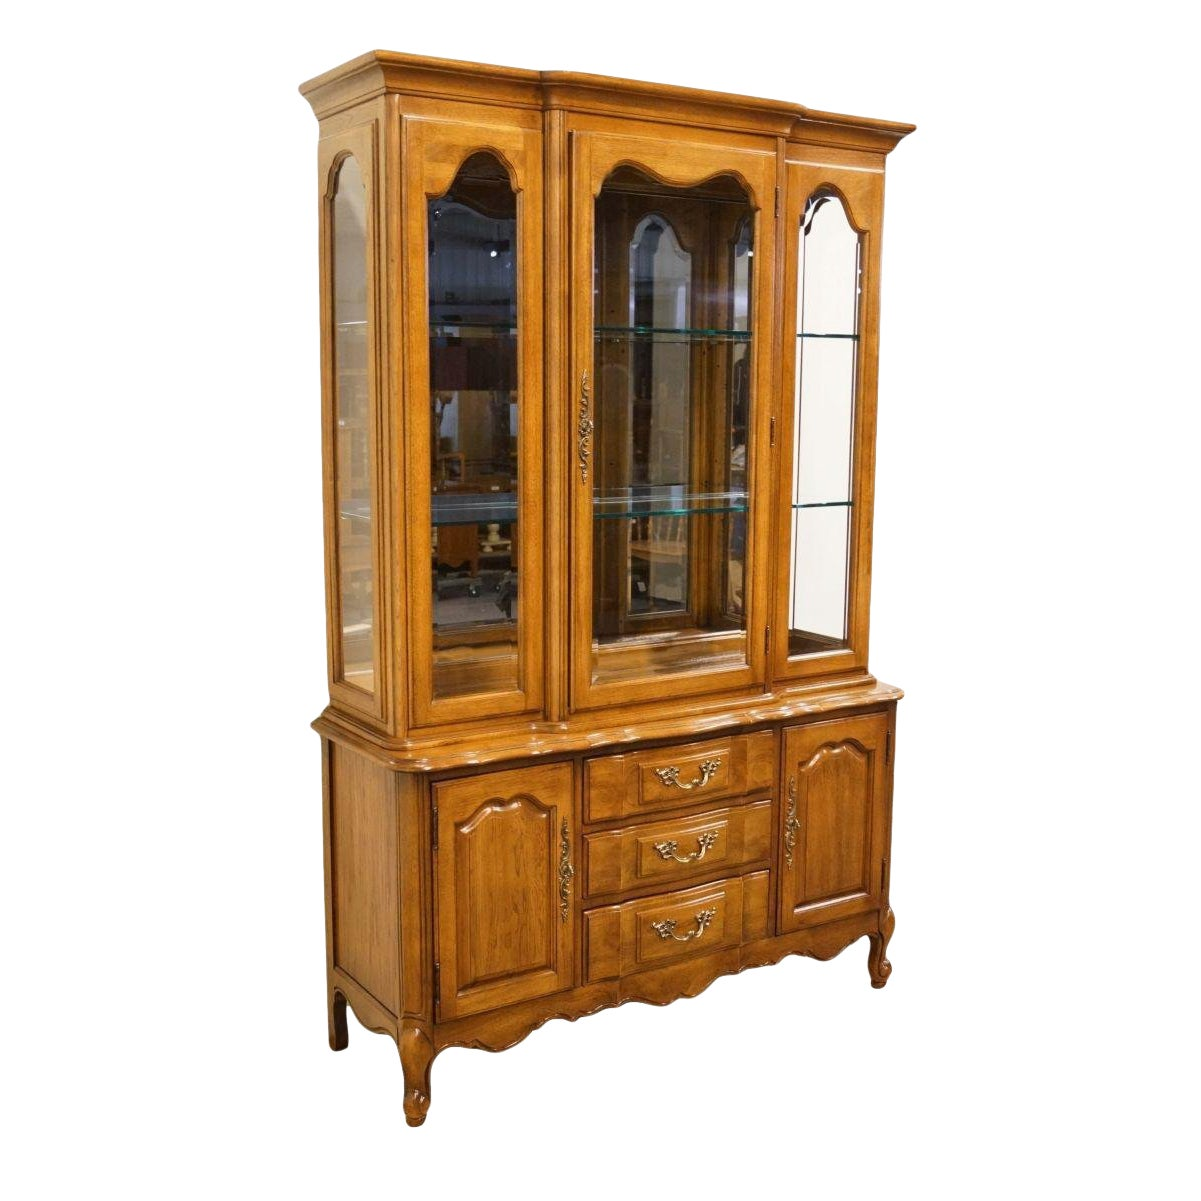 Thomasville Furniture Tableau Collection French Provincial 50 China